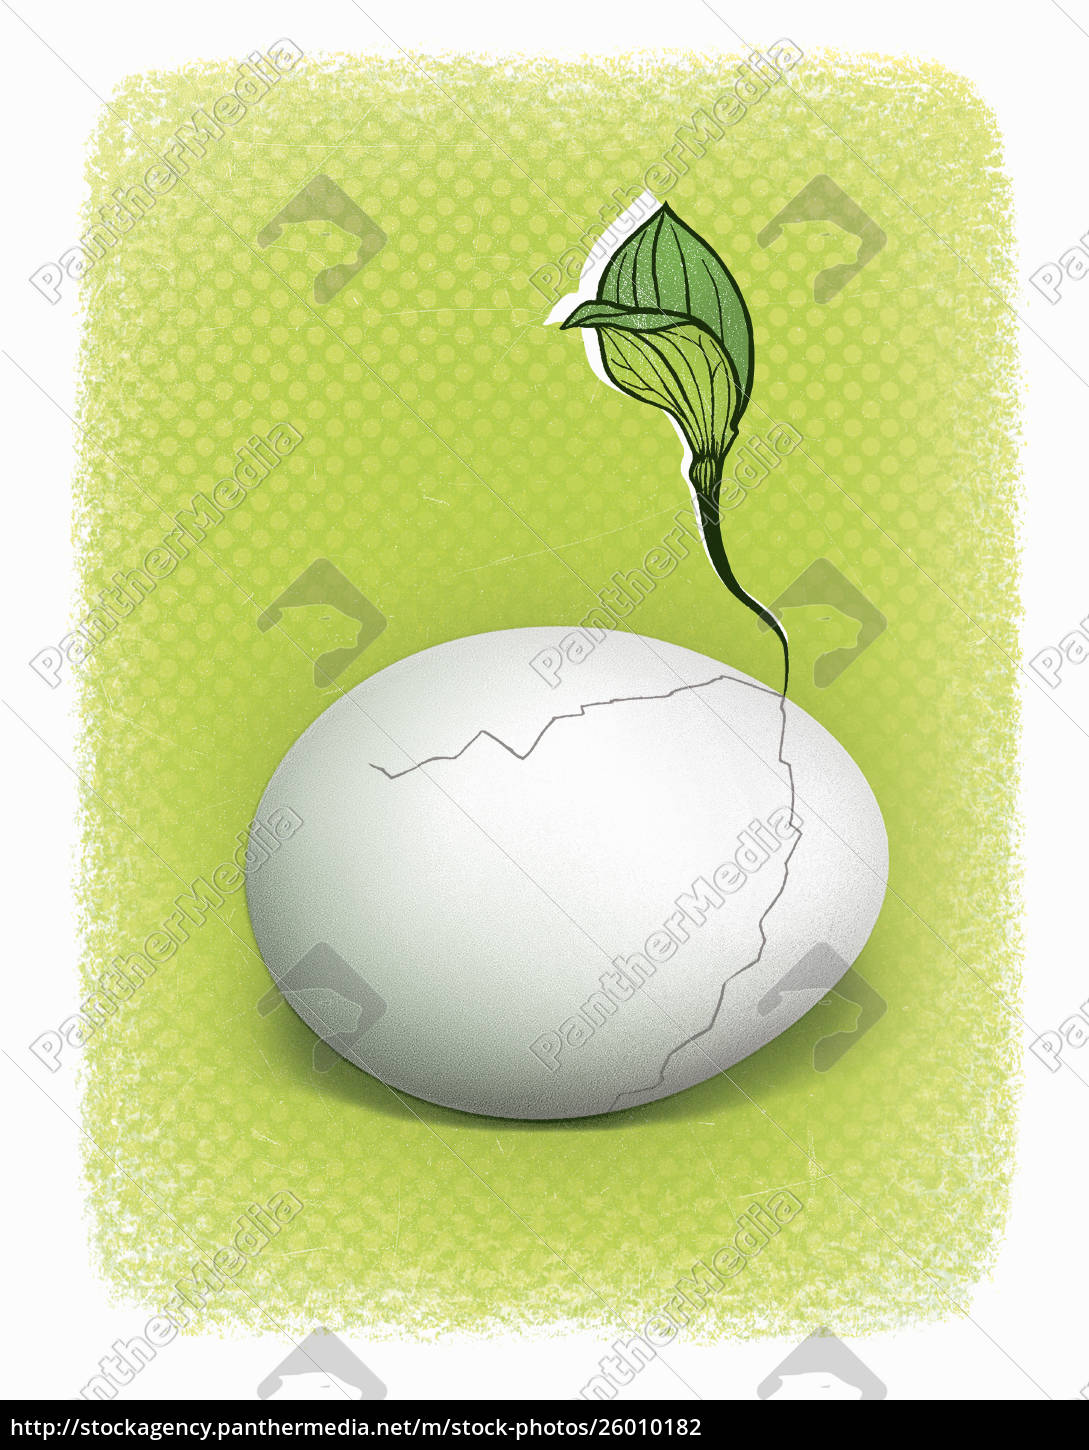 seedling, growing, from, cracked, egg - 26010182